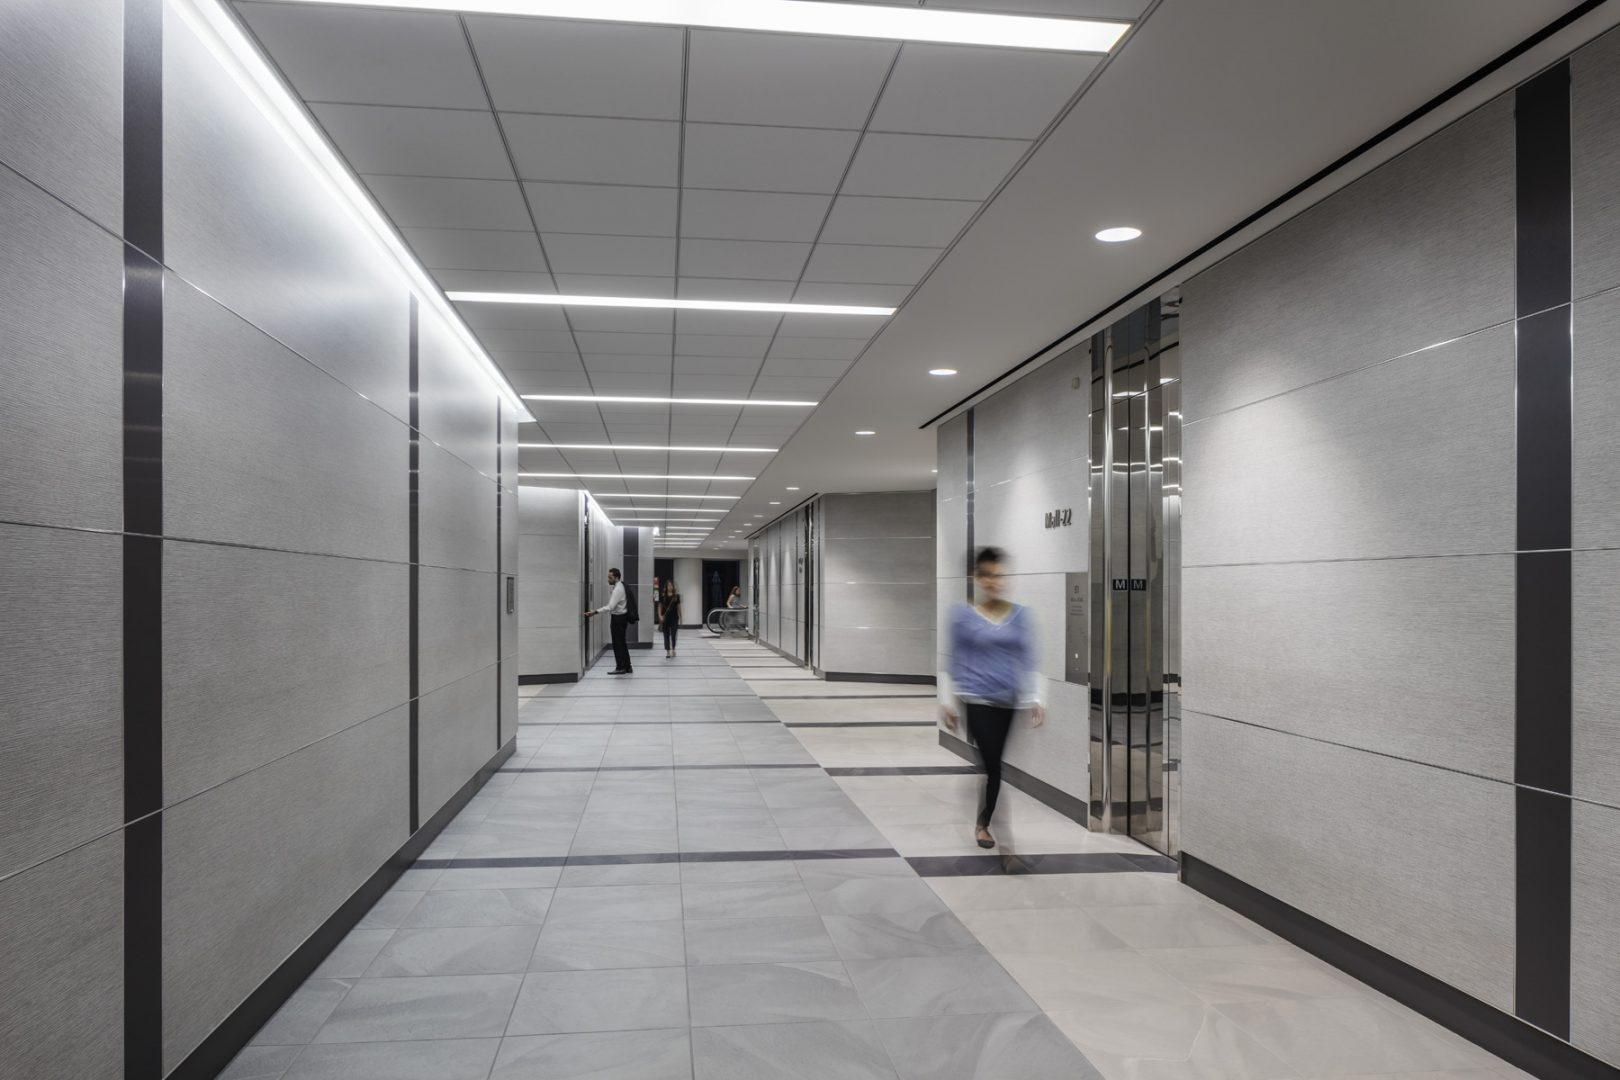 Architecture Building Repositioning Corporate Interior Design 1415 Louisiana Houston Elevator Lobby